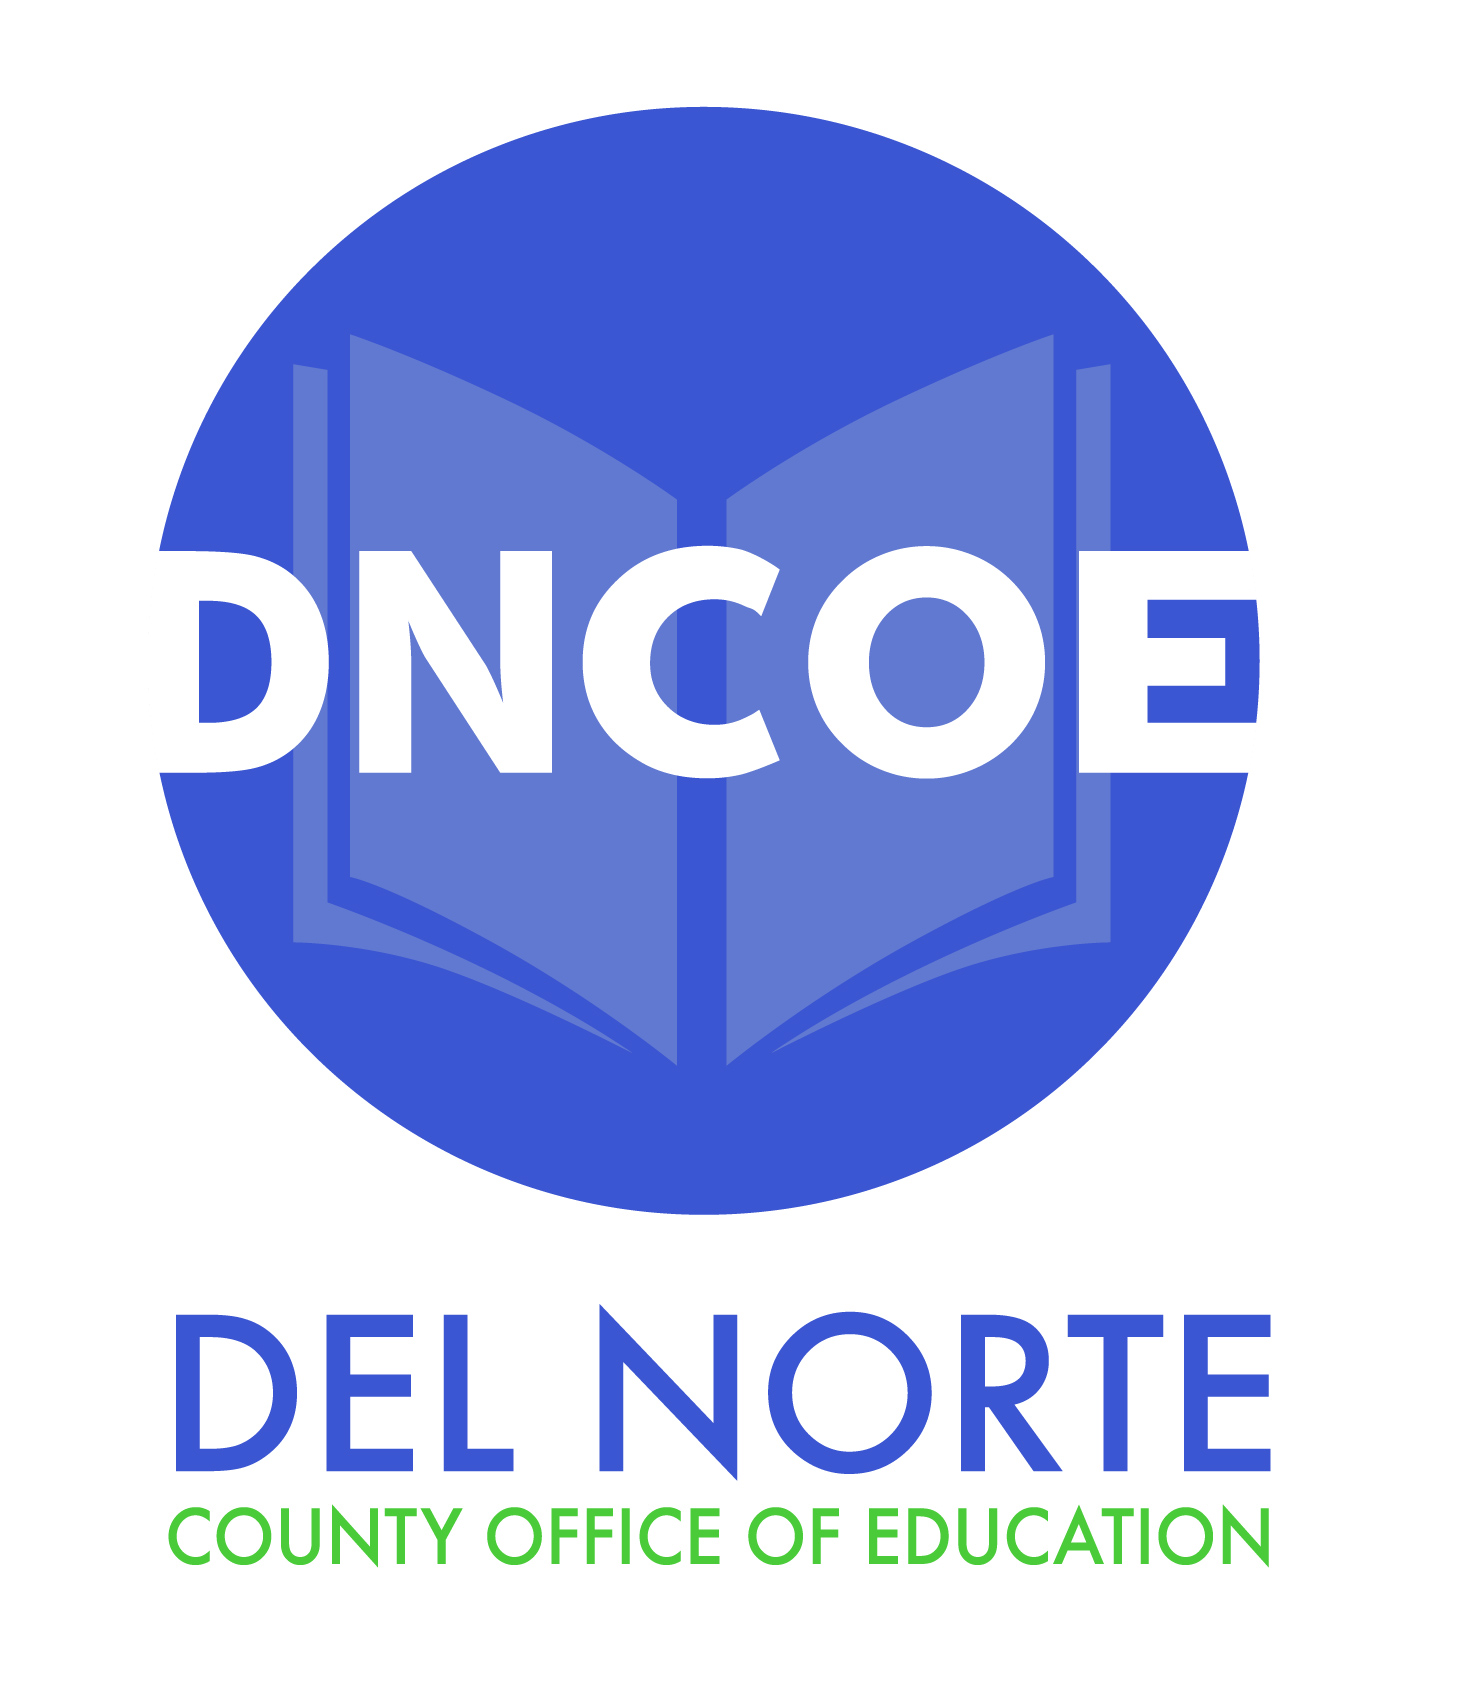 Del Norte County Office of Education's Logo